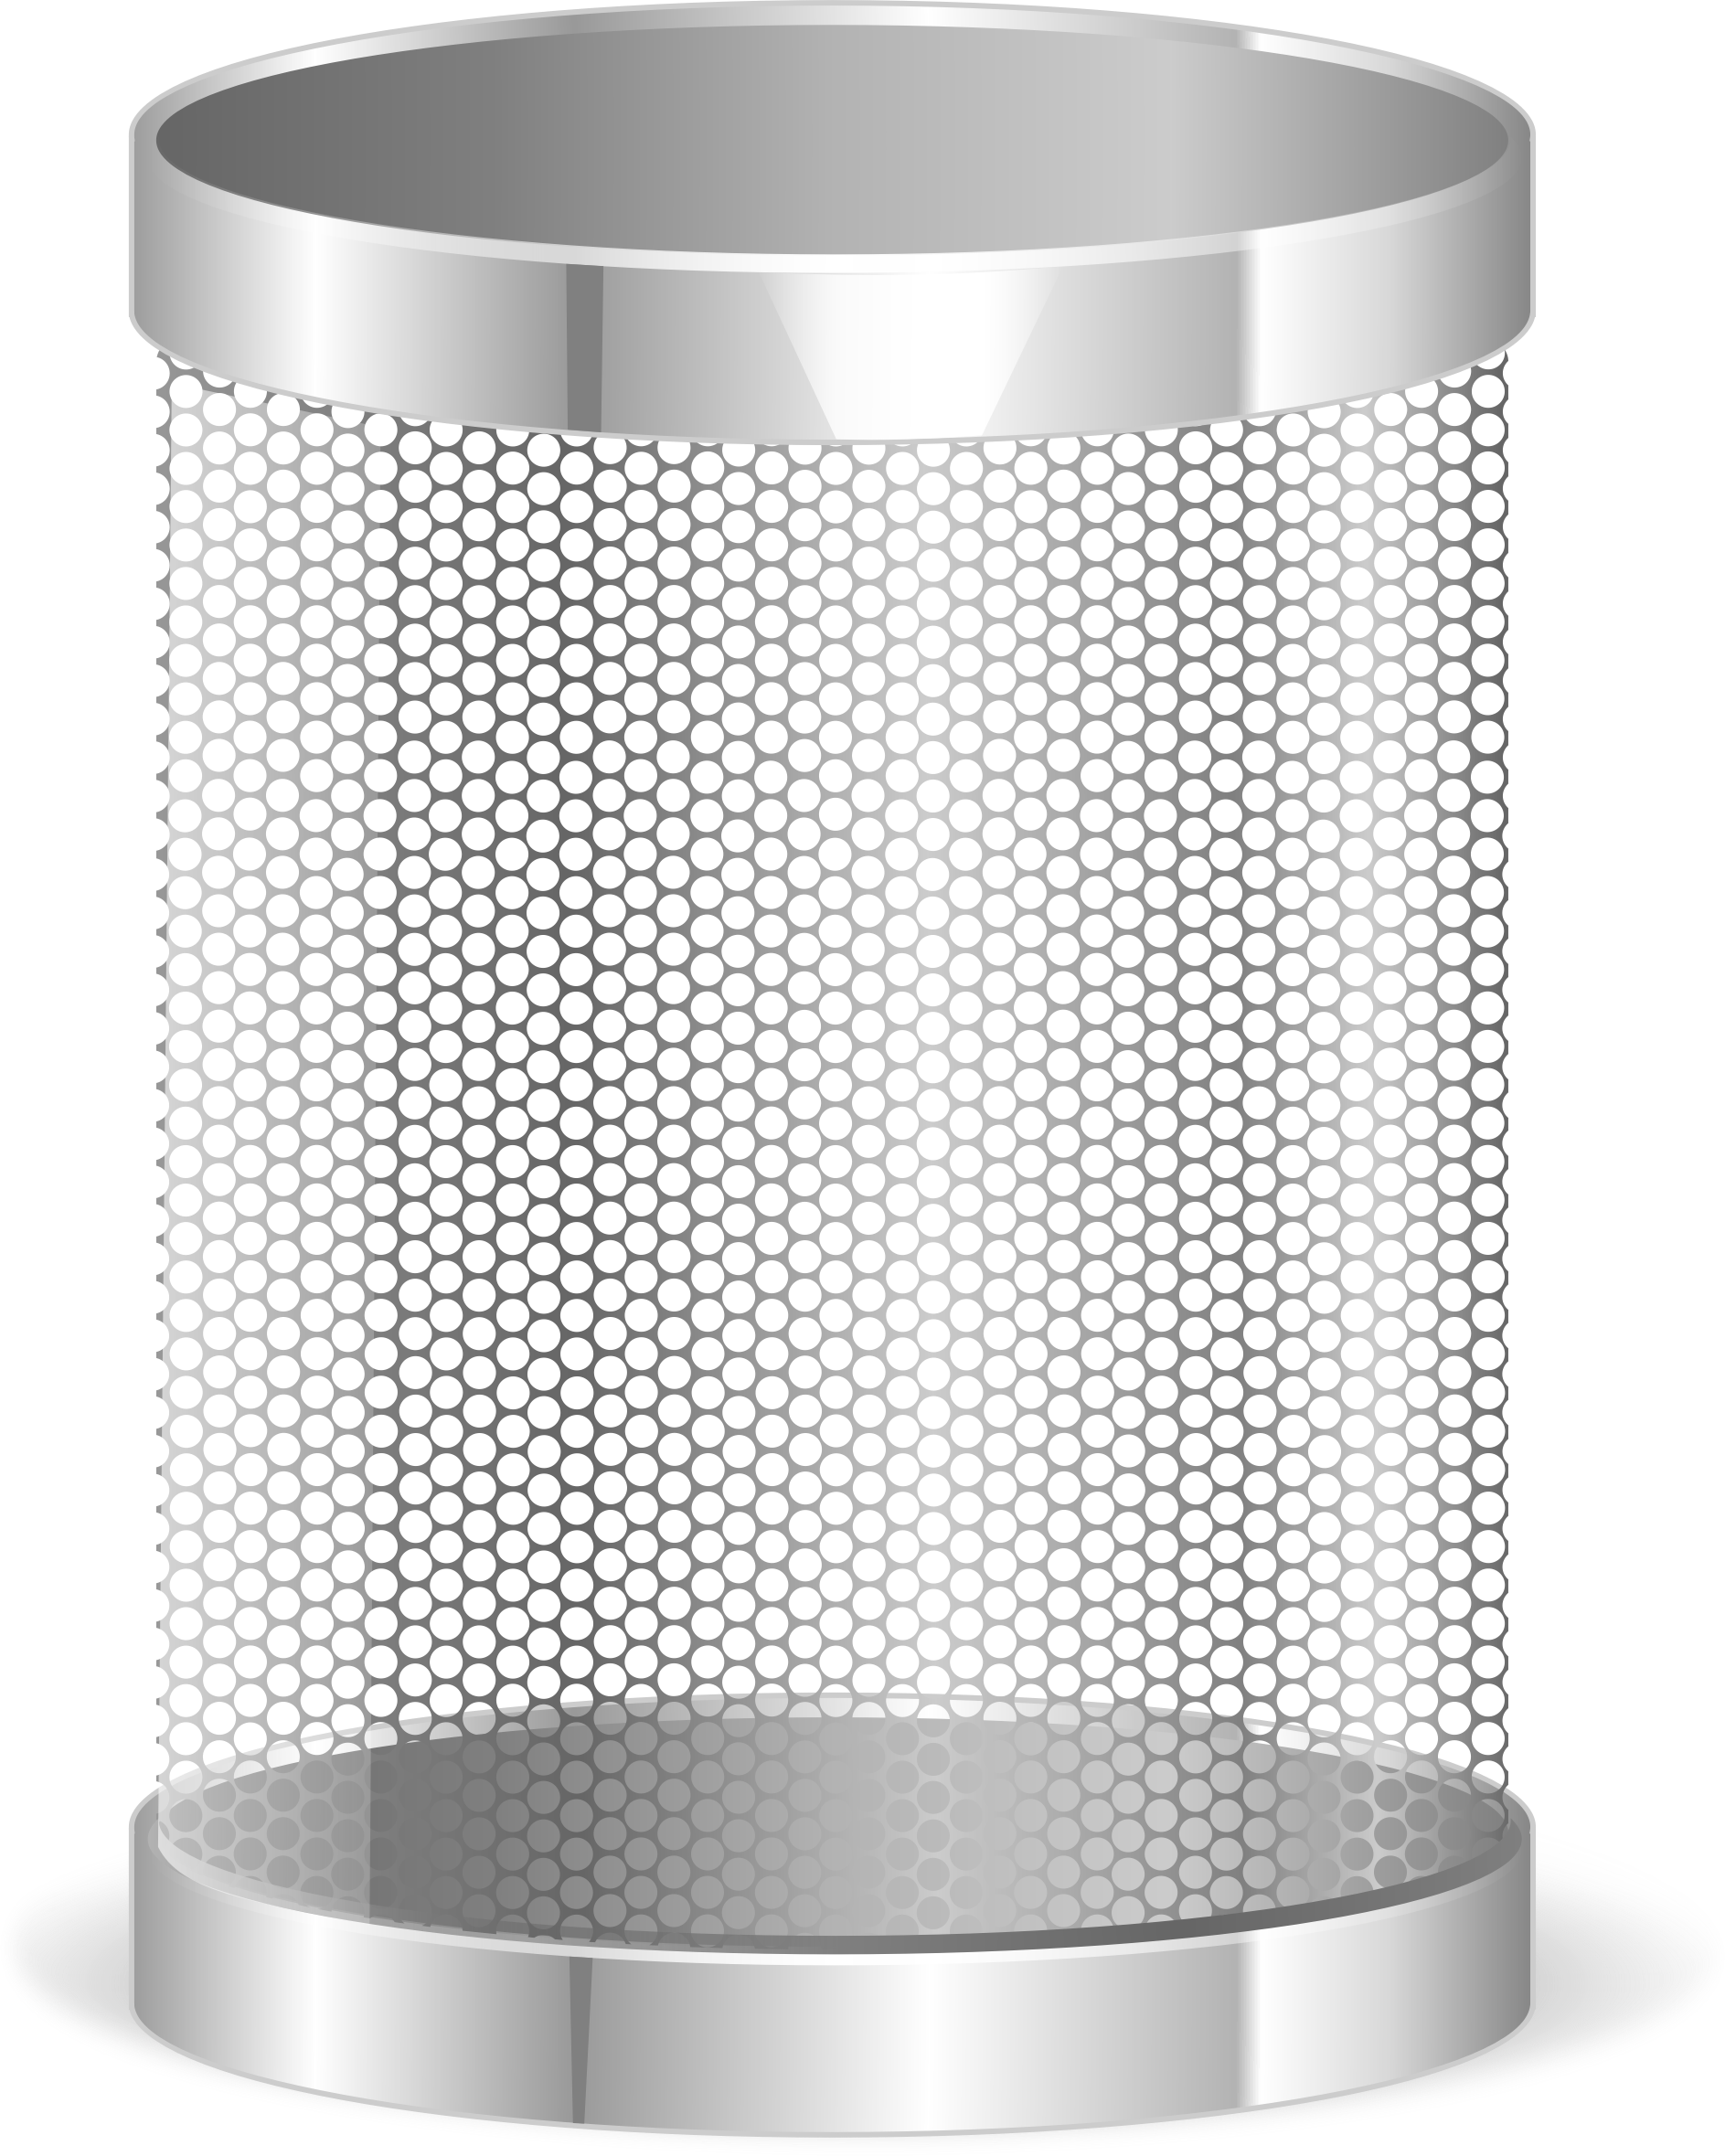 Open Garbage Can Png - Transparent Trash Bin Png (1887x2359), Png Download